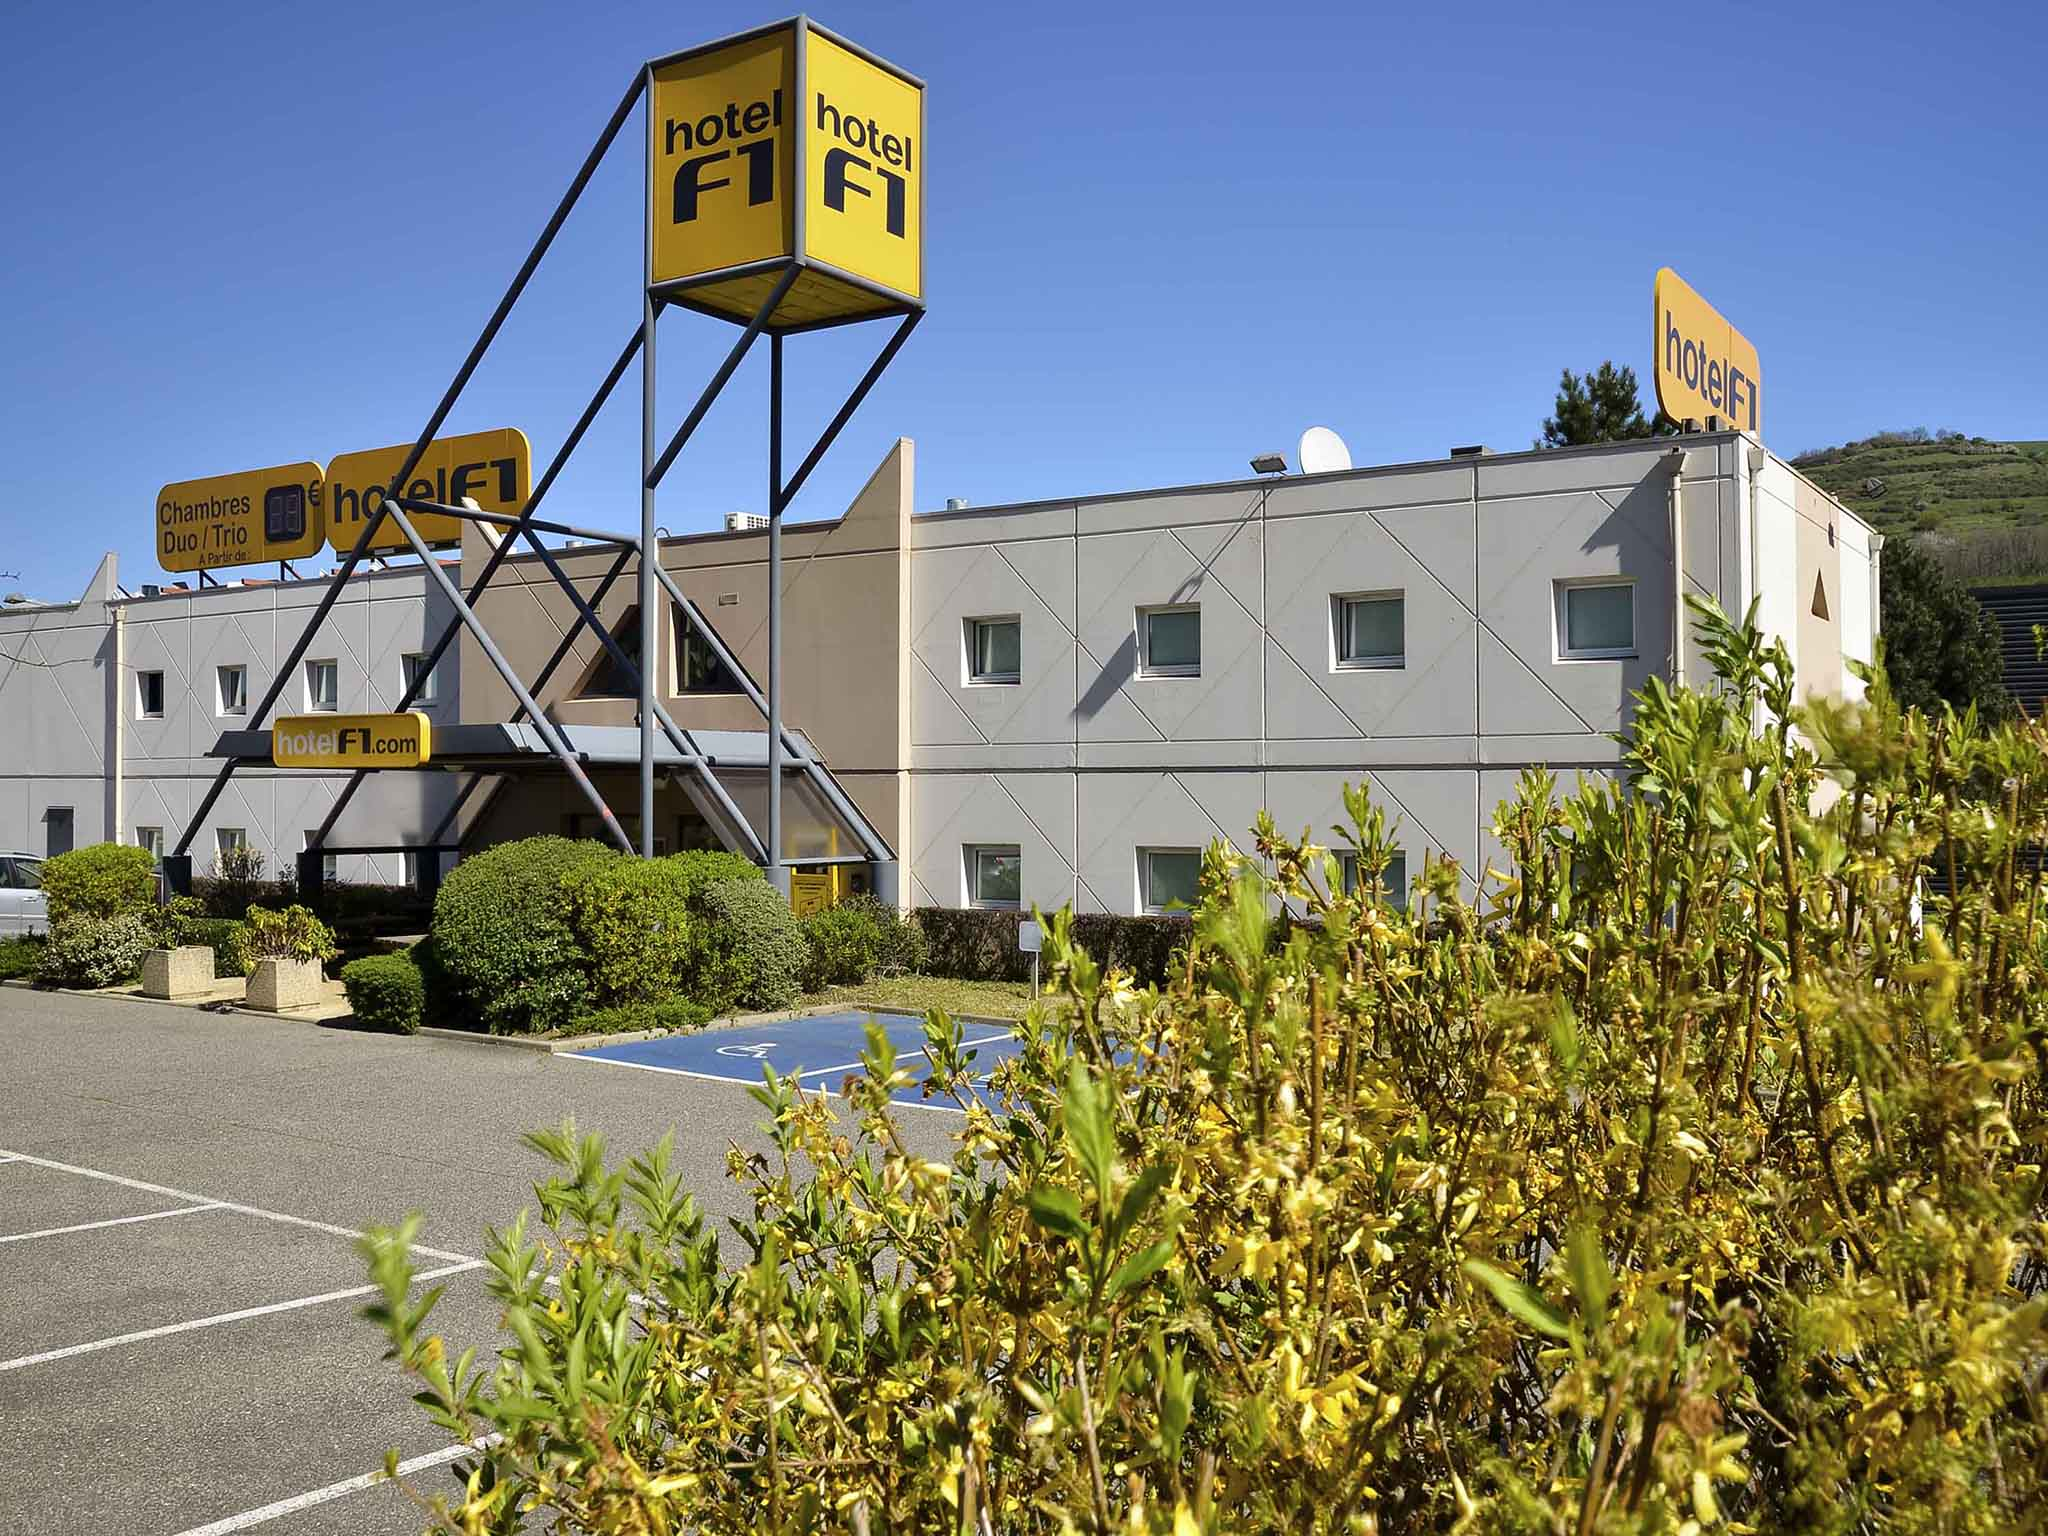 Hotel – hotelF1 Clermont Ferrand Issoire Coudes